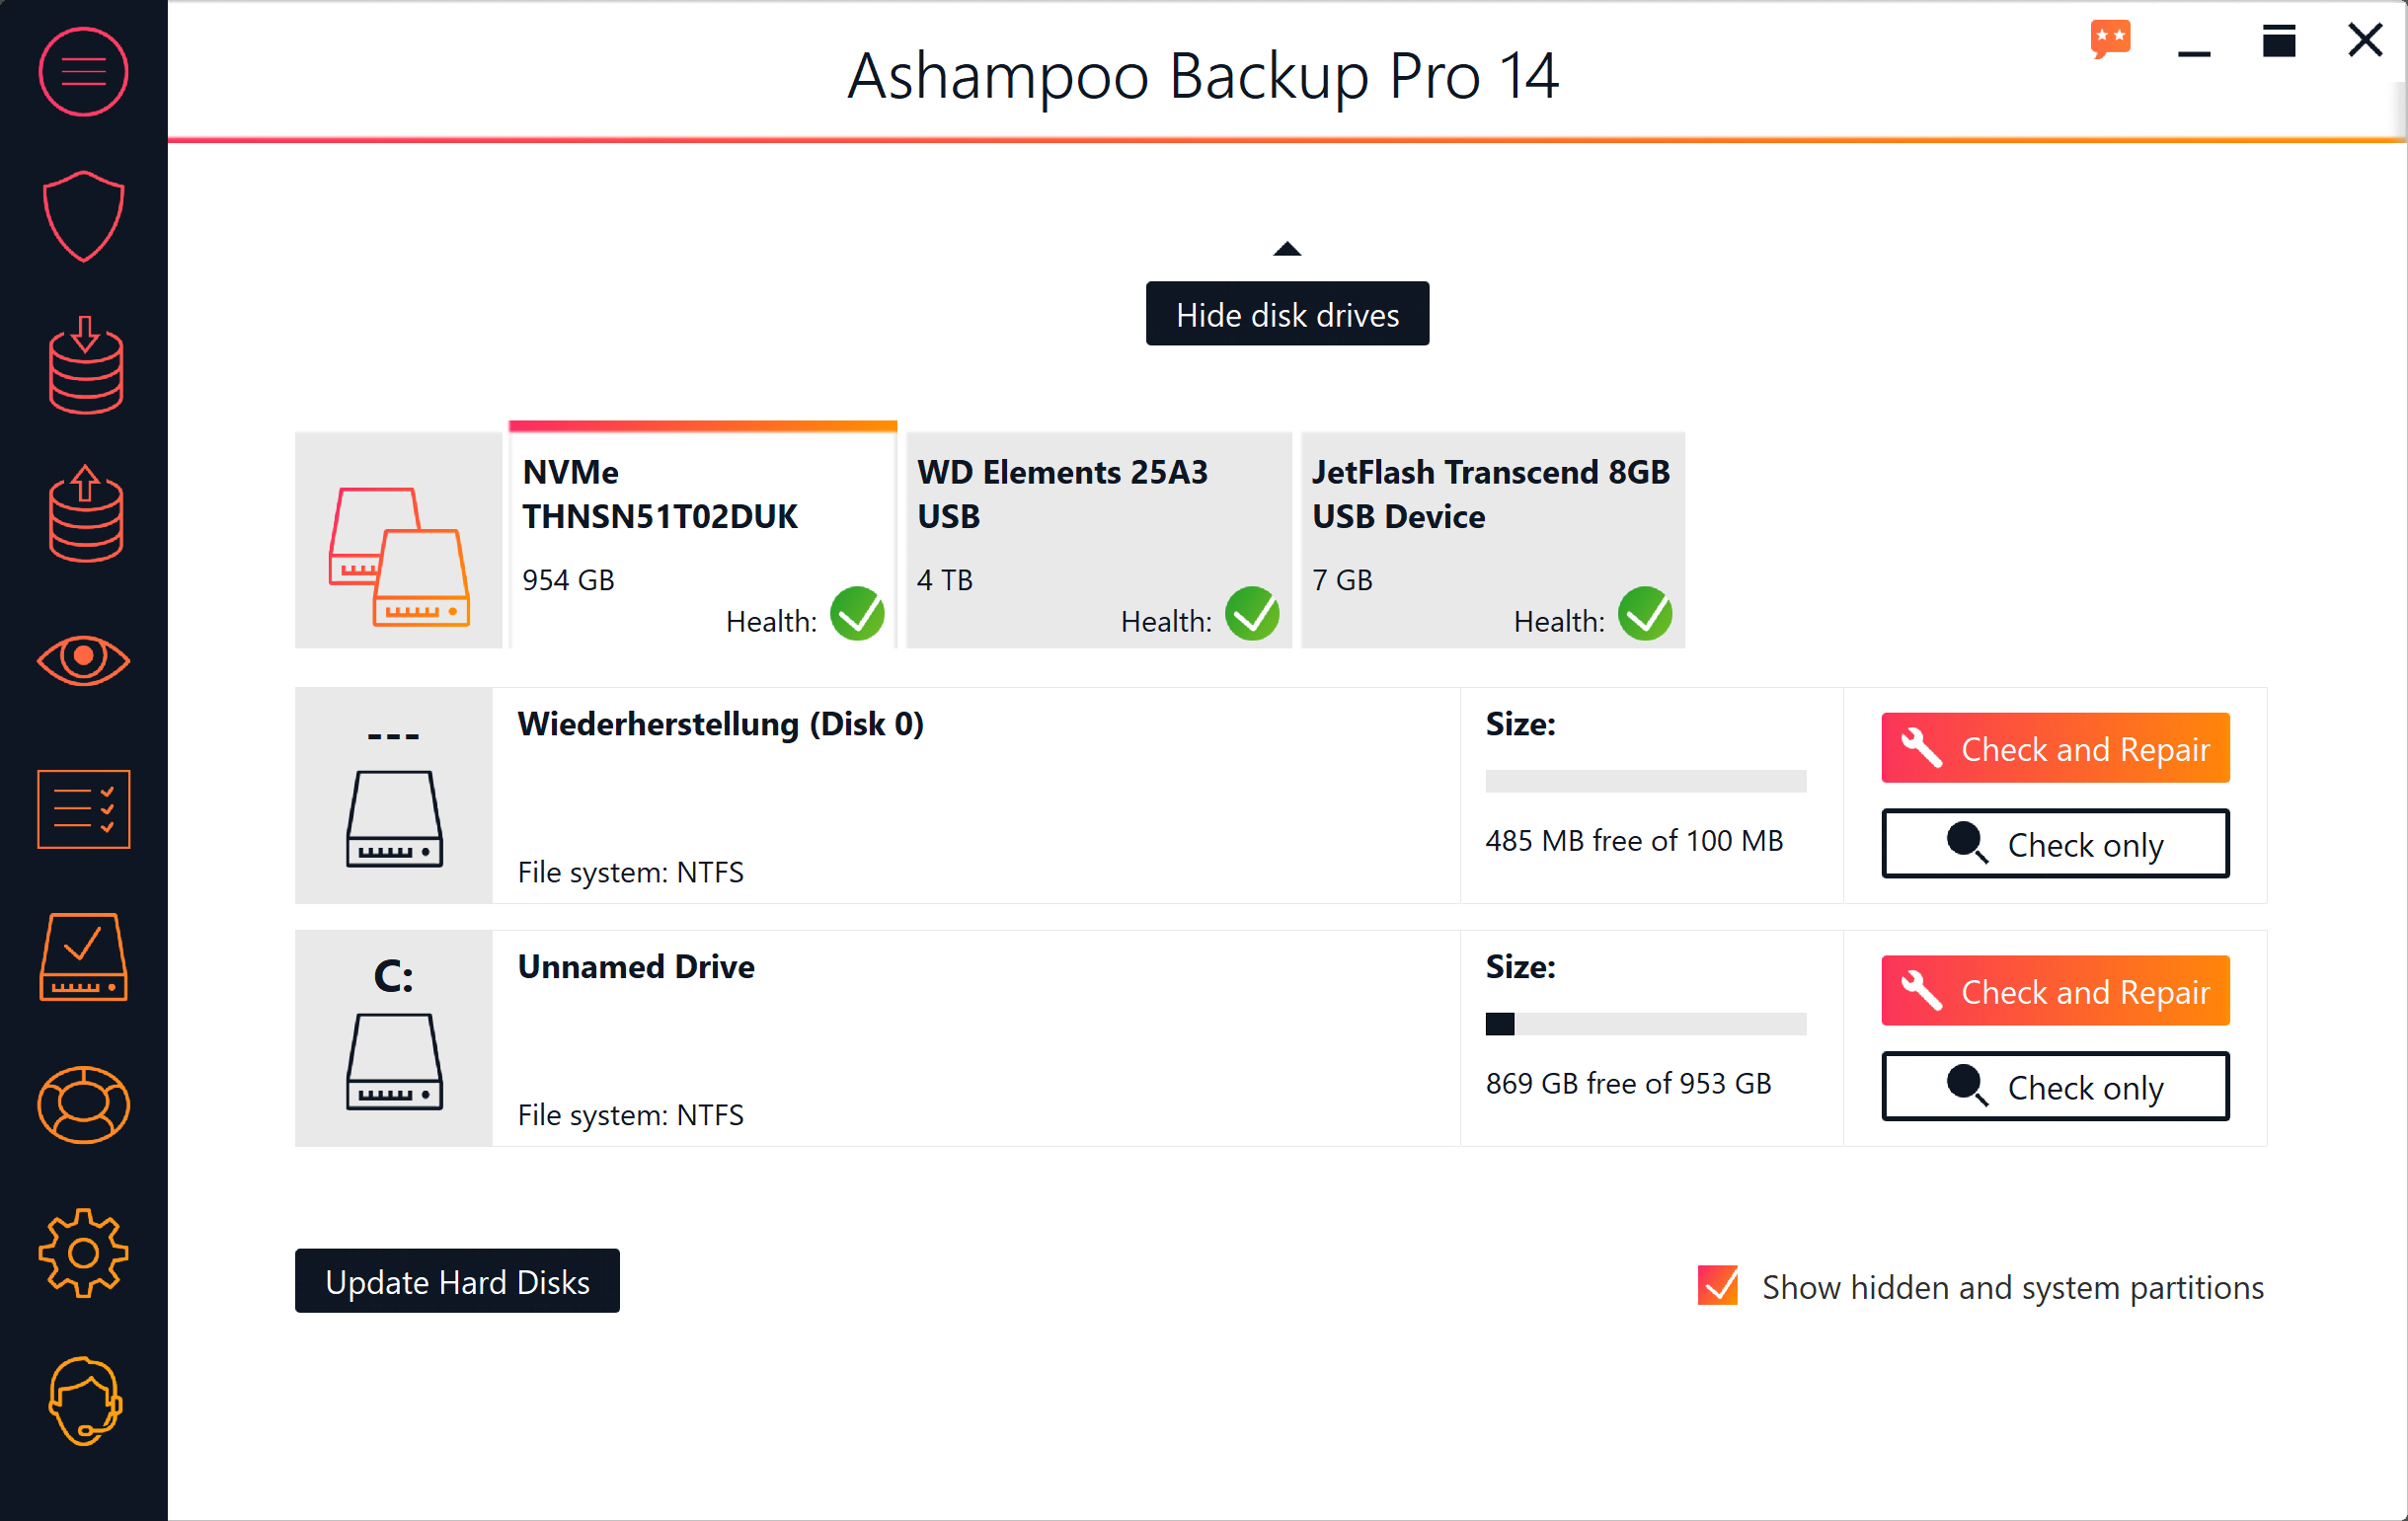 Ashampoo Backup Pro 14 screenshot